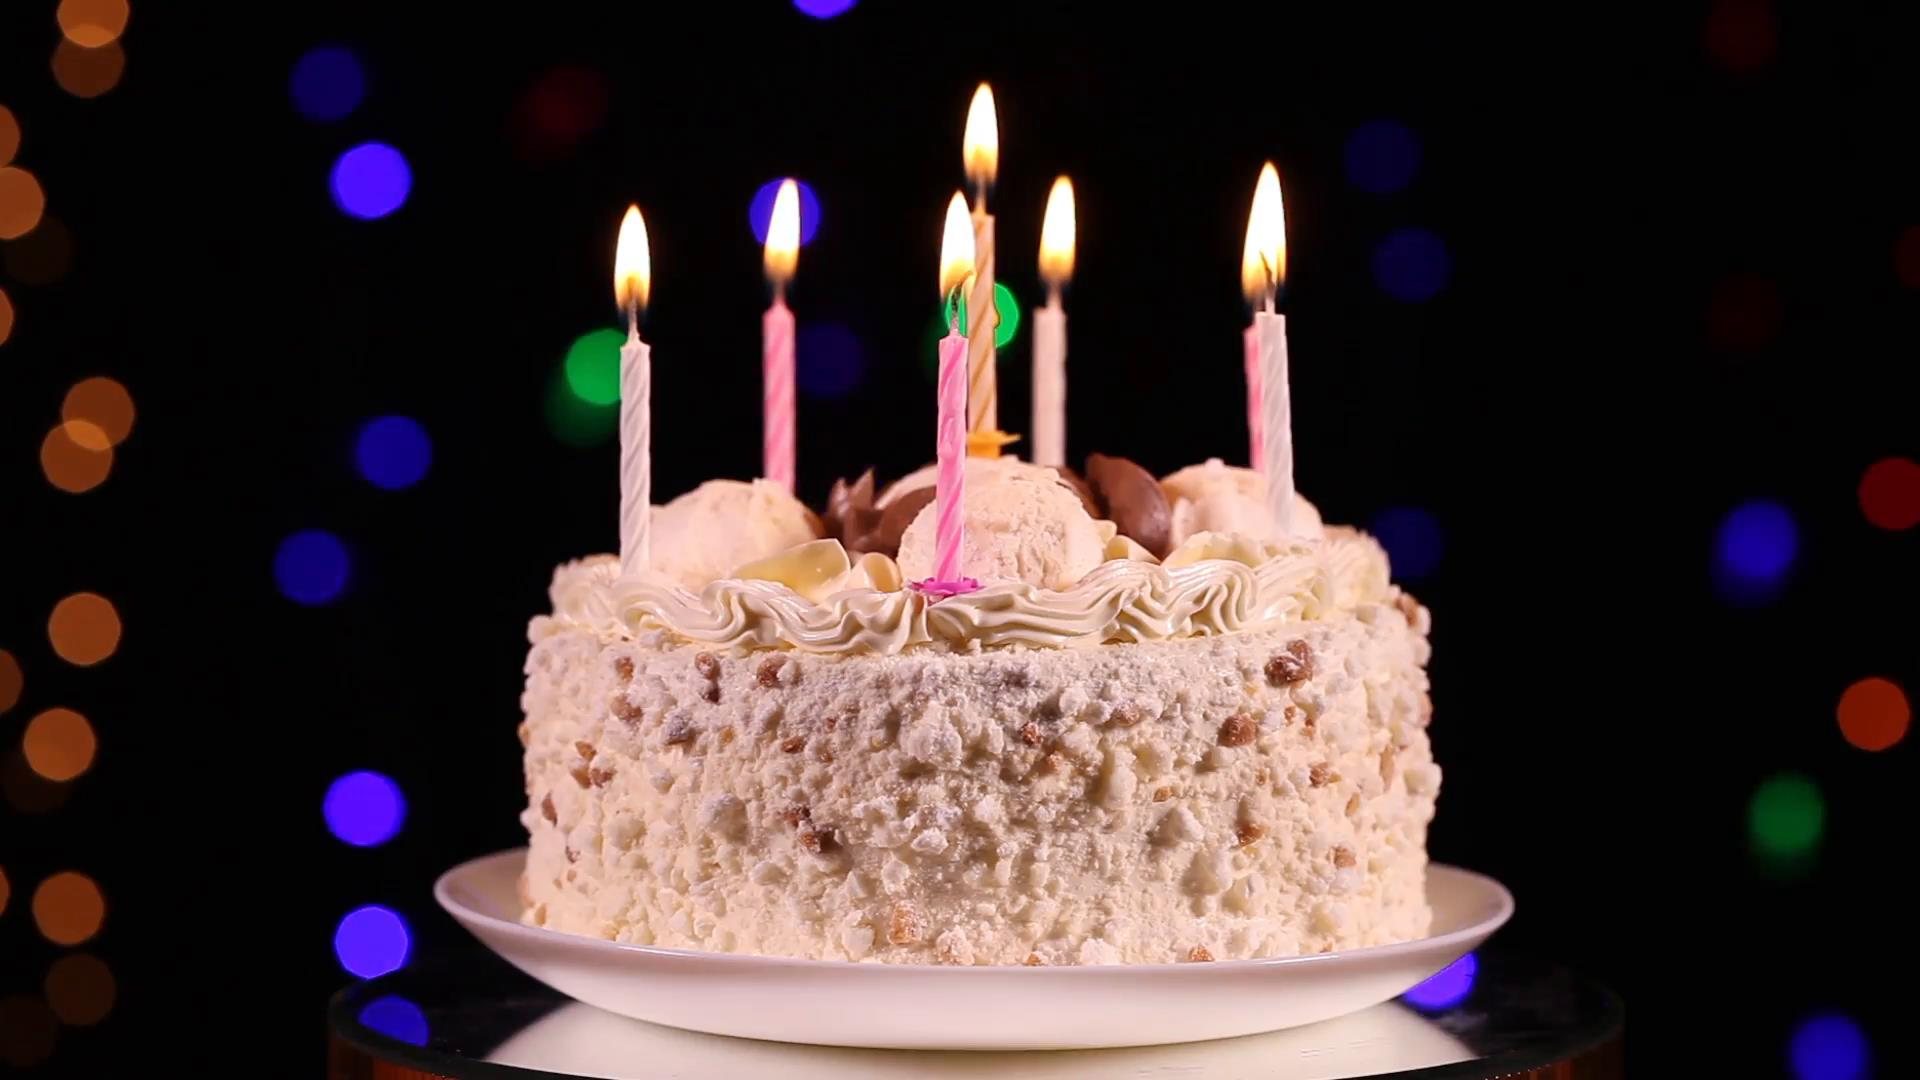 picture of birthday cake and candles ; happy-birthday-cake-with-burning-candles-in-front-of-black-background-with-flashing-lights_vagh2n9xnx__F0000